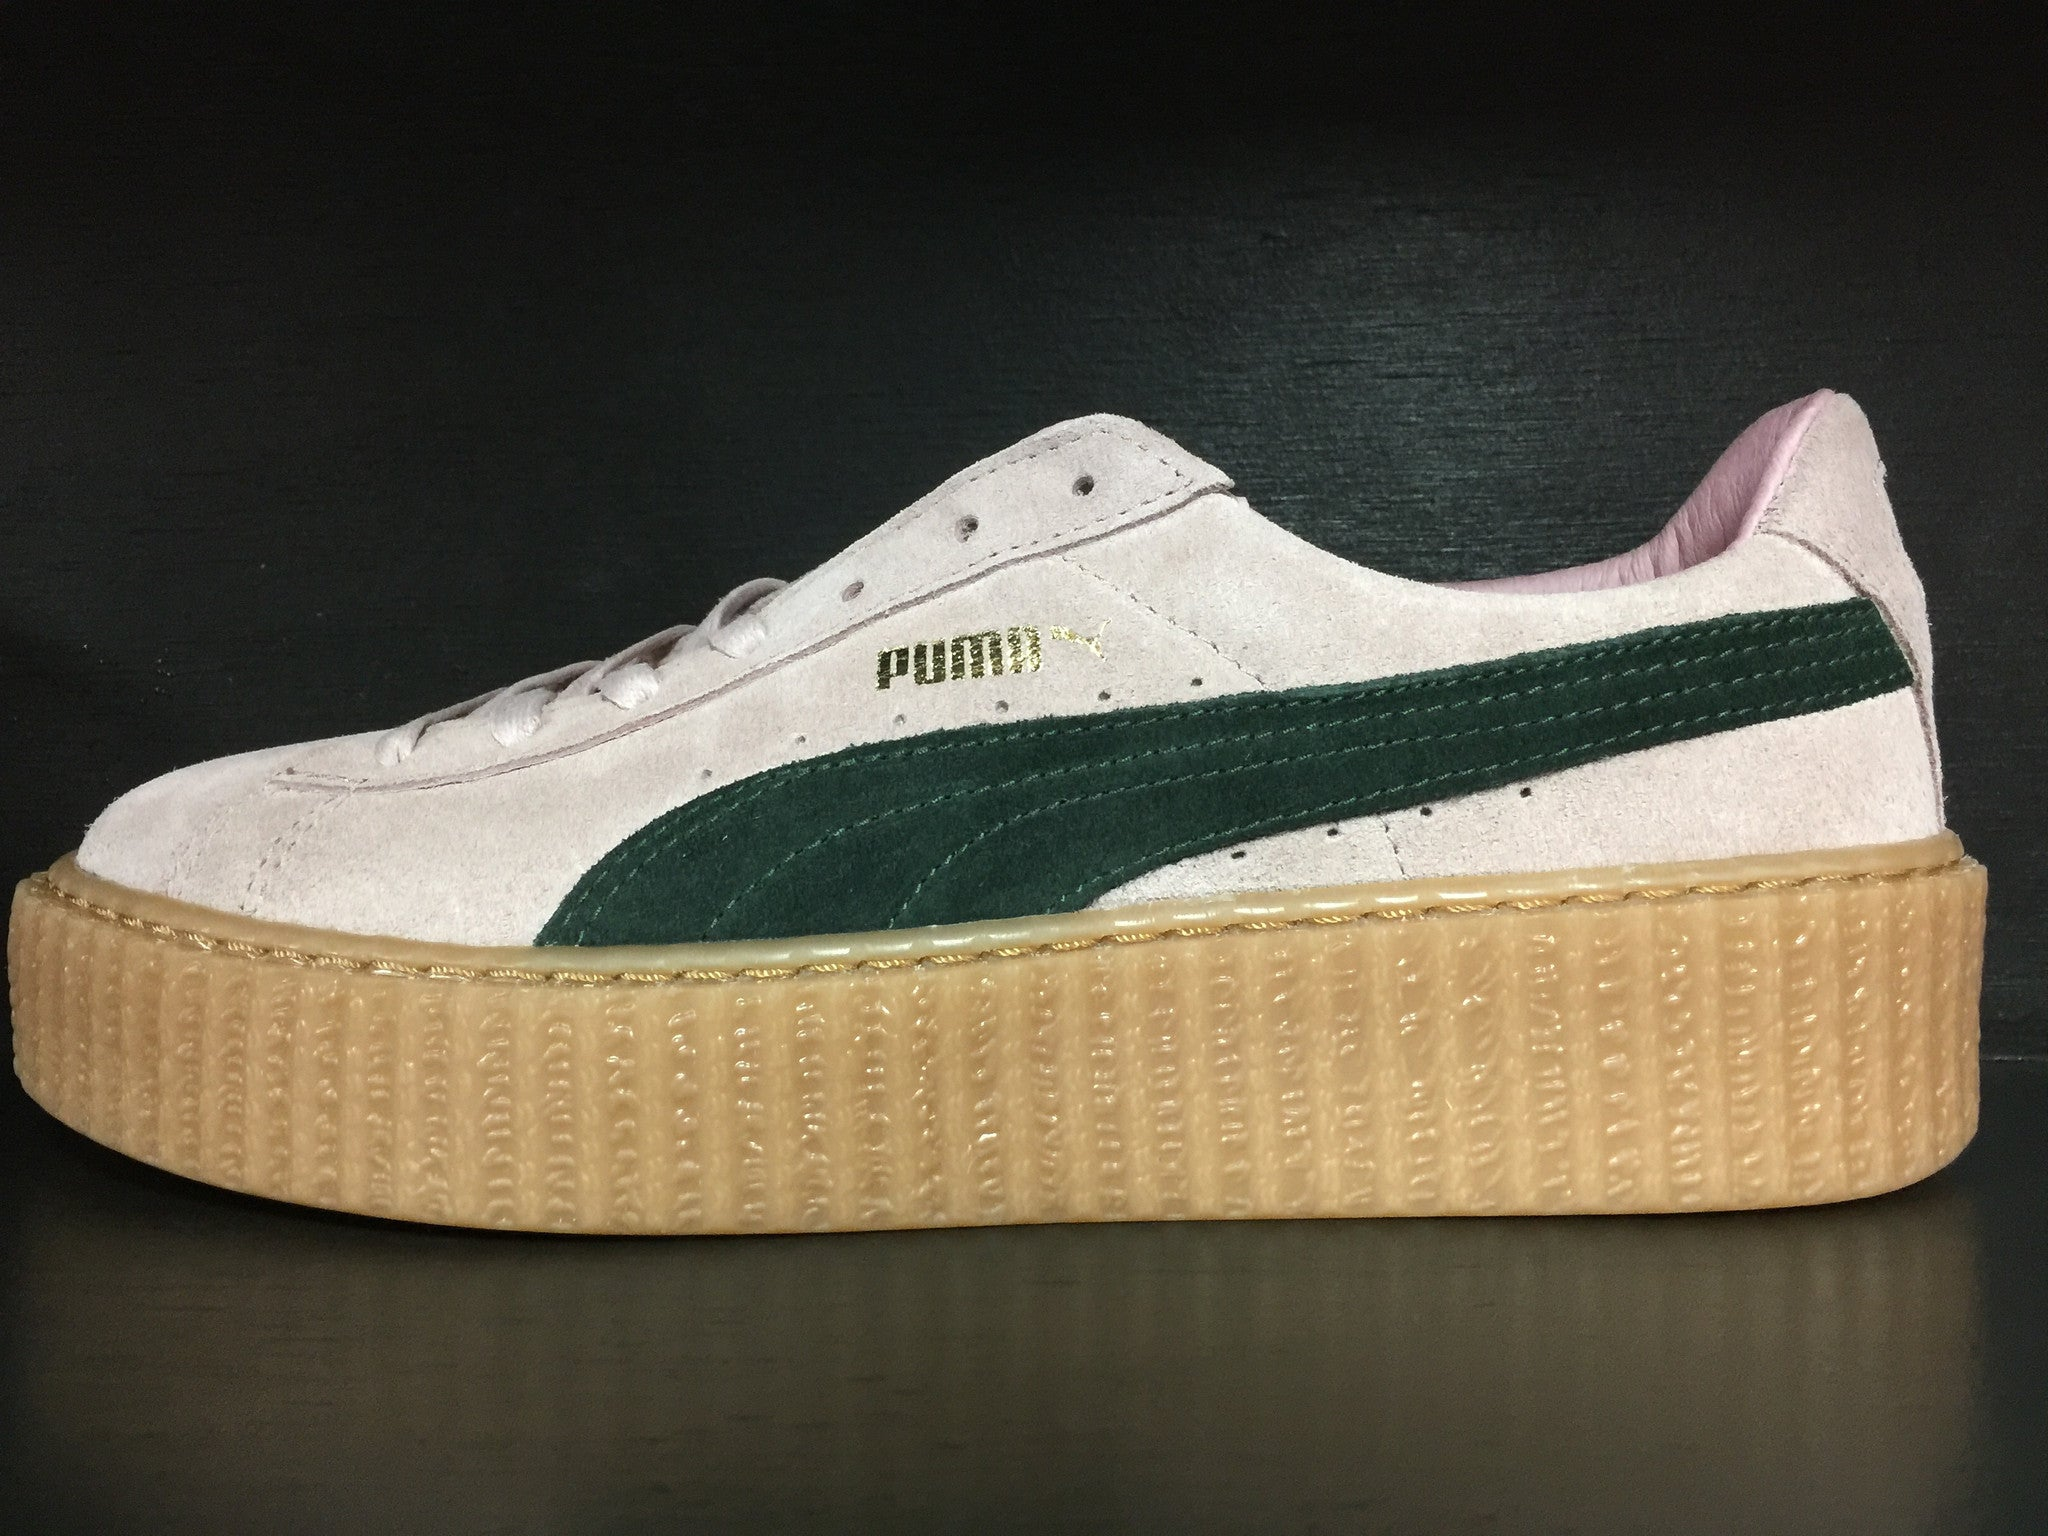 Puma By Rihanna Women's Creeper 'Pink'